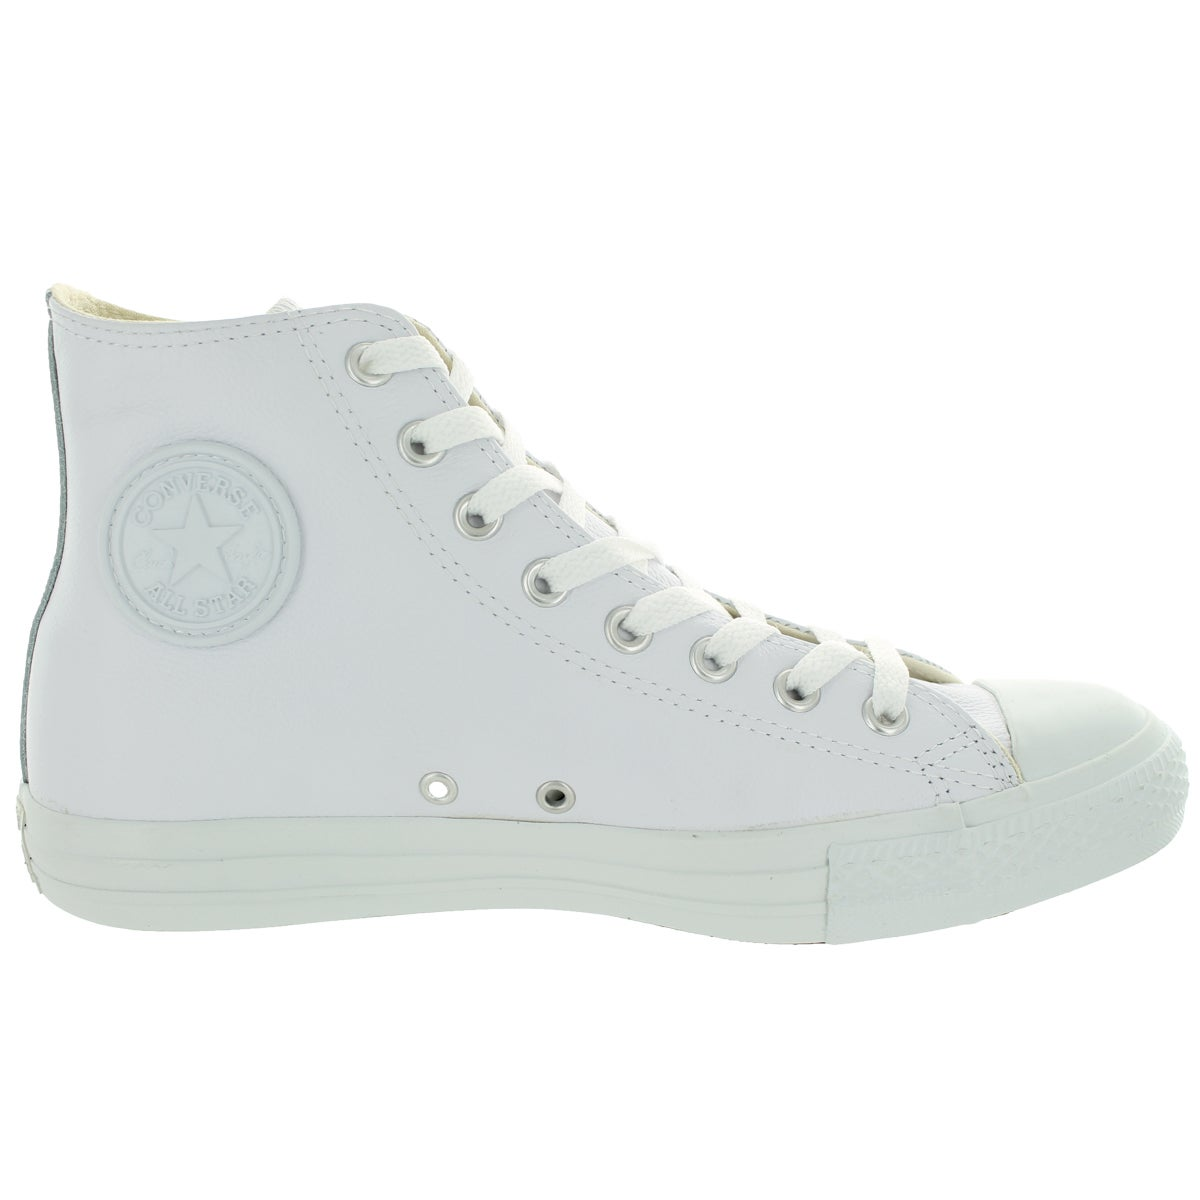 800063d7343c4b Shop Converse Men s All Star Chuck Taylor Leather Hi White Basketball Shoe  - Free Shipping Today - Overstock - 13404646